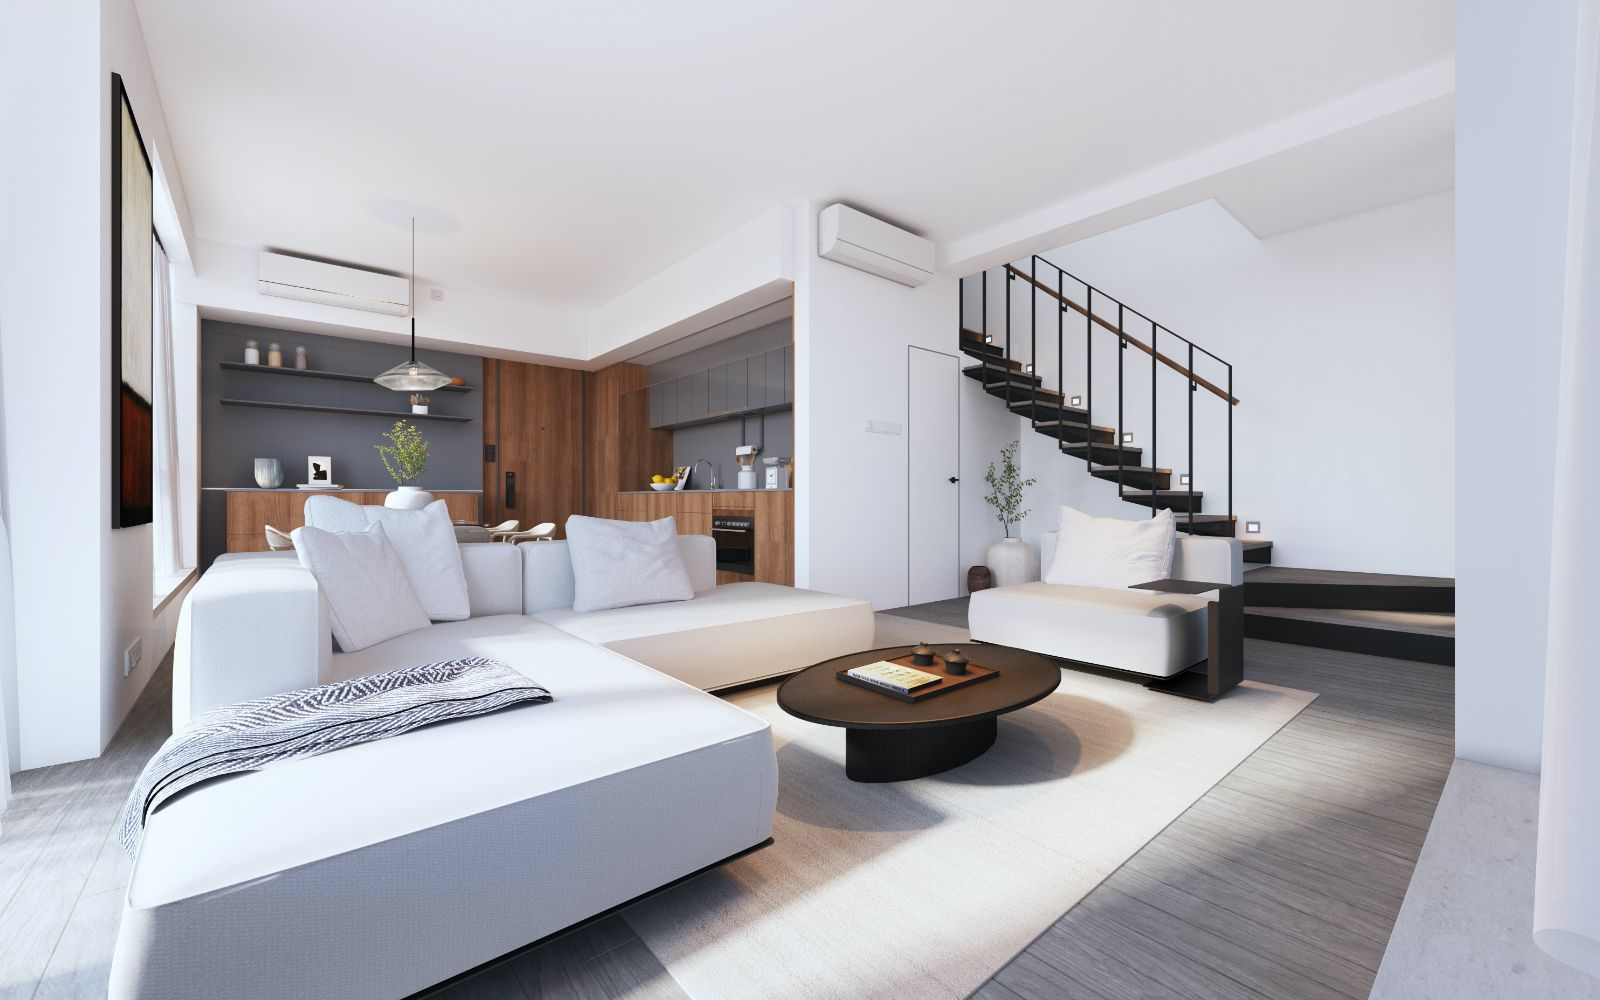 Luxury Residences At 42 Tung St. Offer Sophisticated Urban Living In The Trendy Poho District